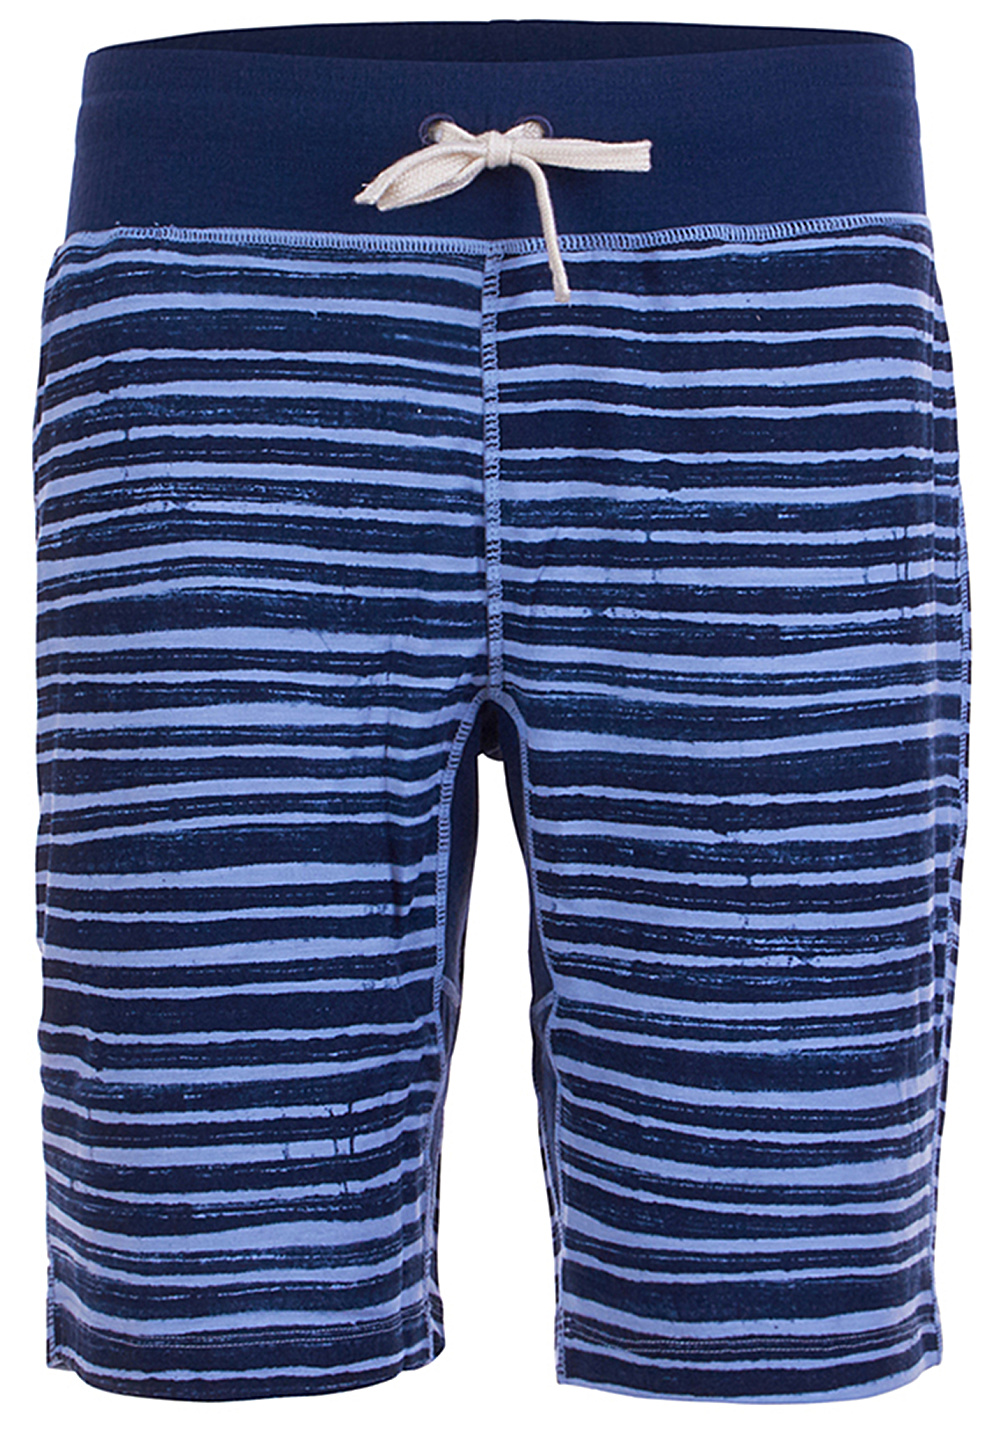 Super.natural Comfort Printed - Shorts für Herren - Blau - L